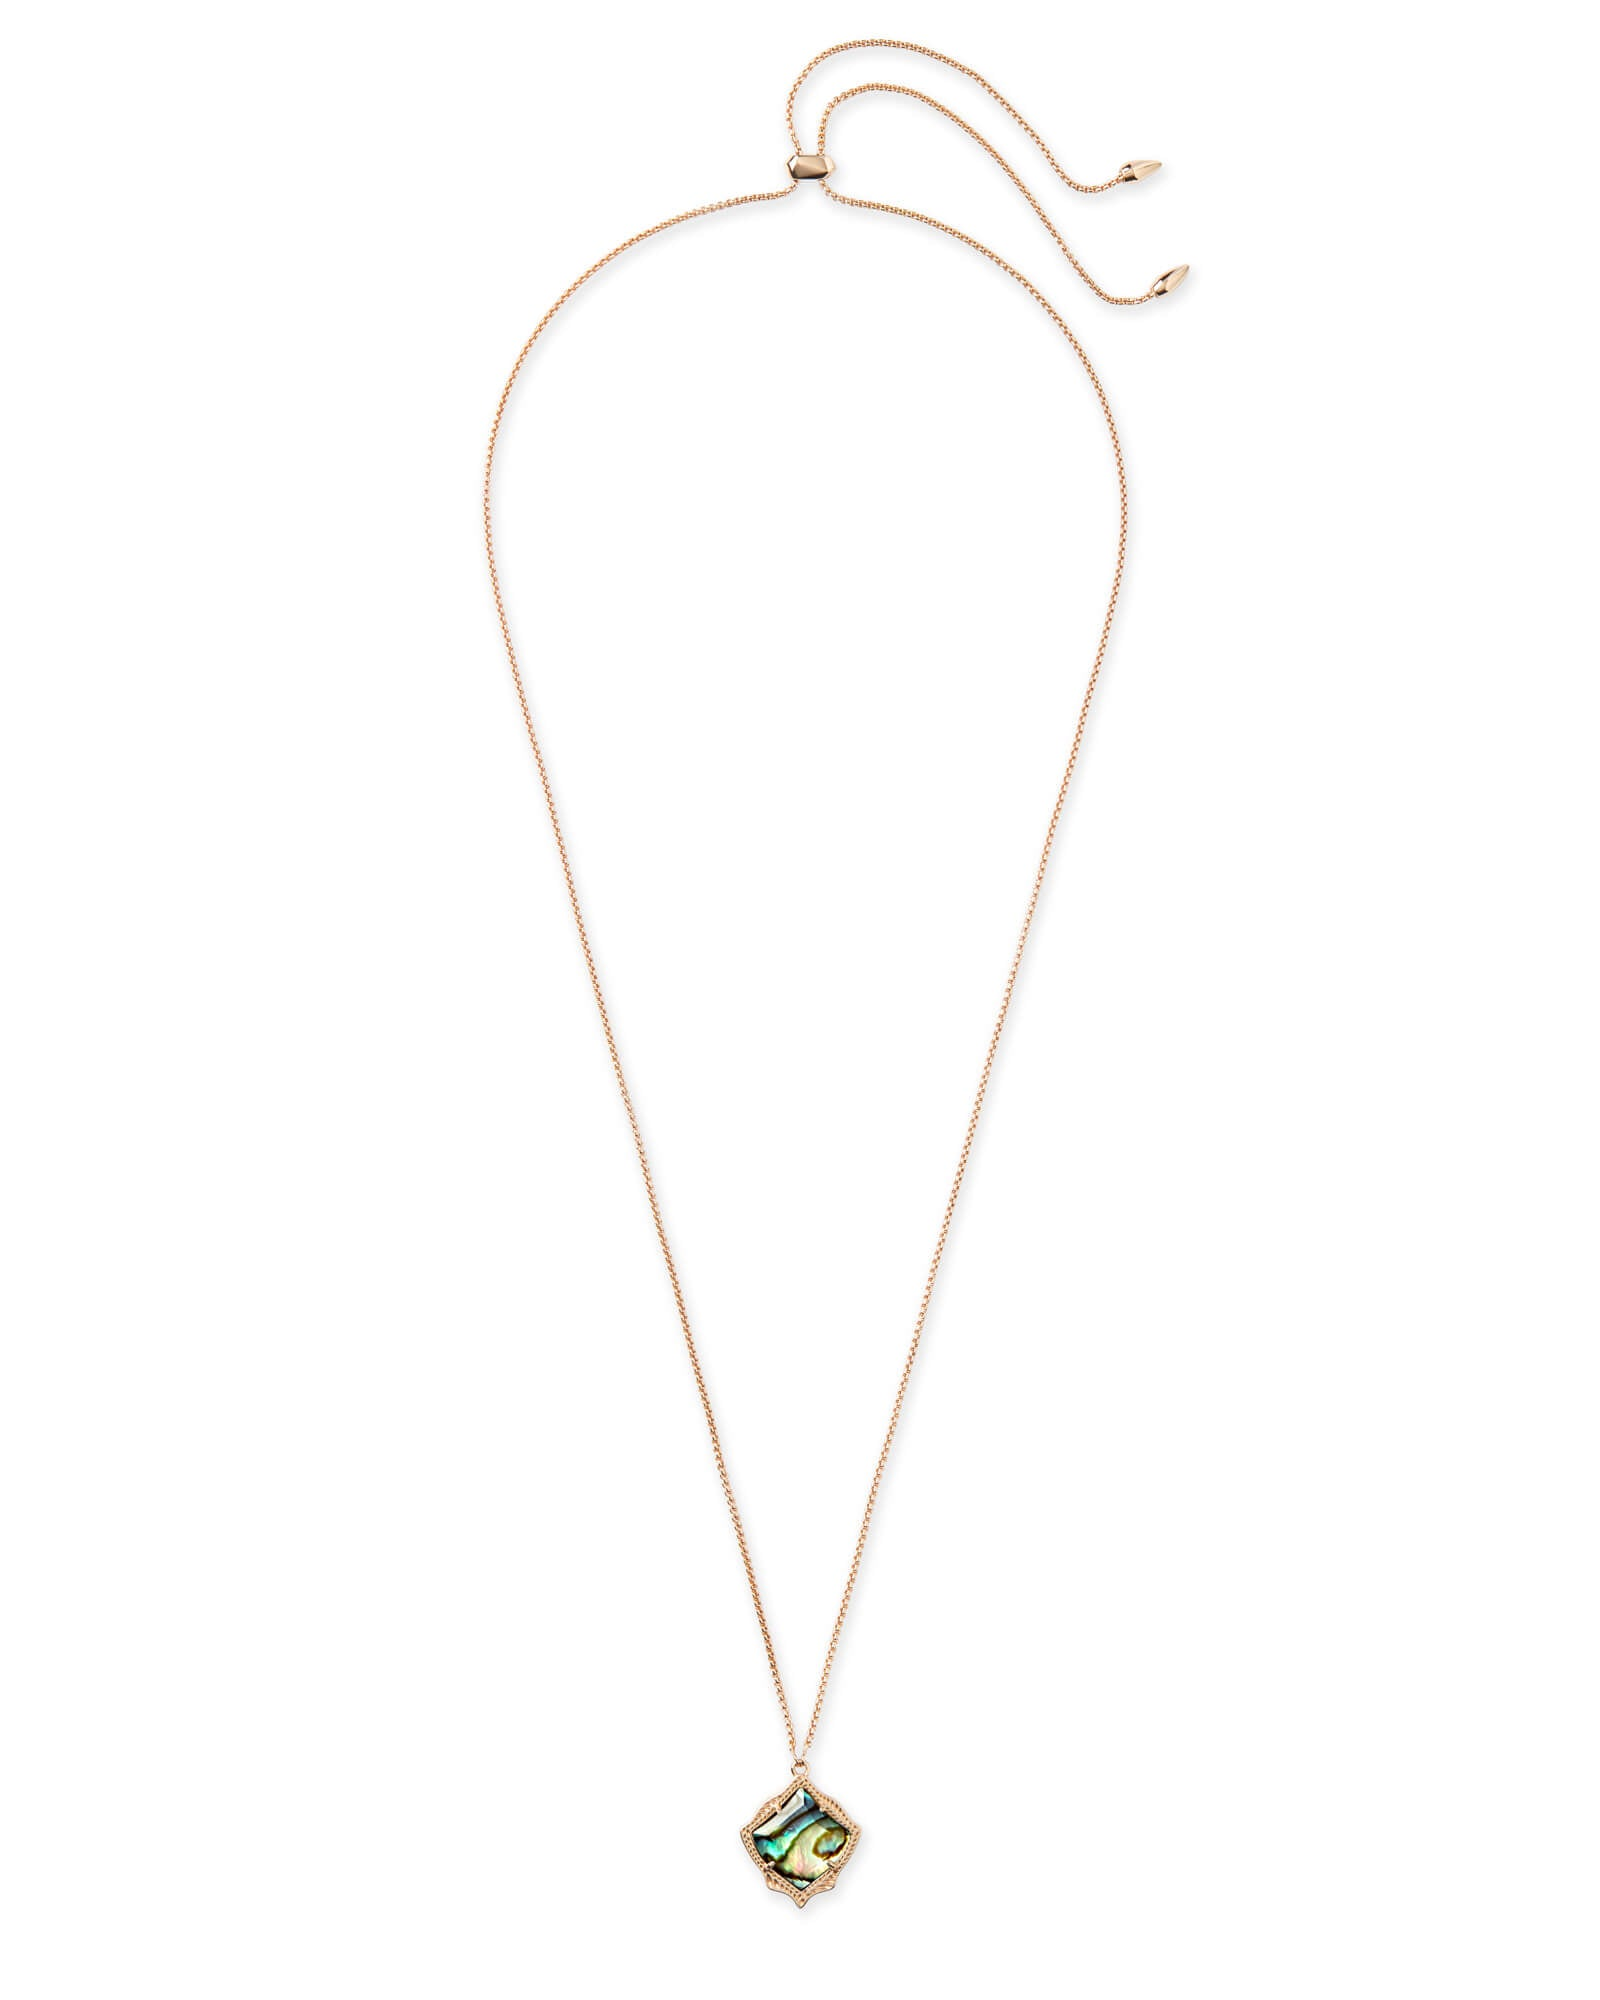 Kacey Long Pendant Necklace in Rose Gold